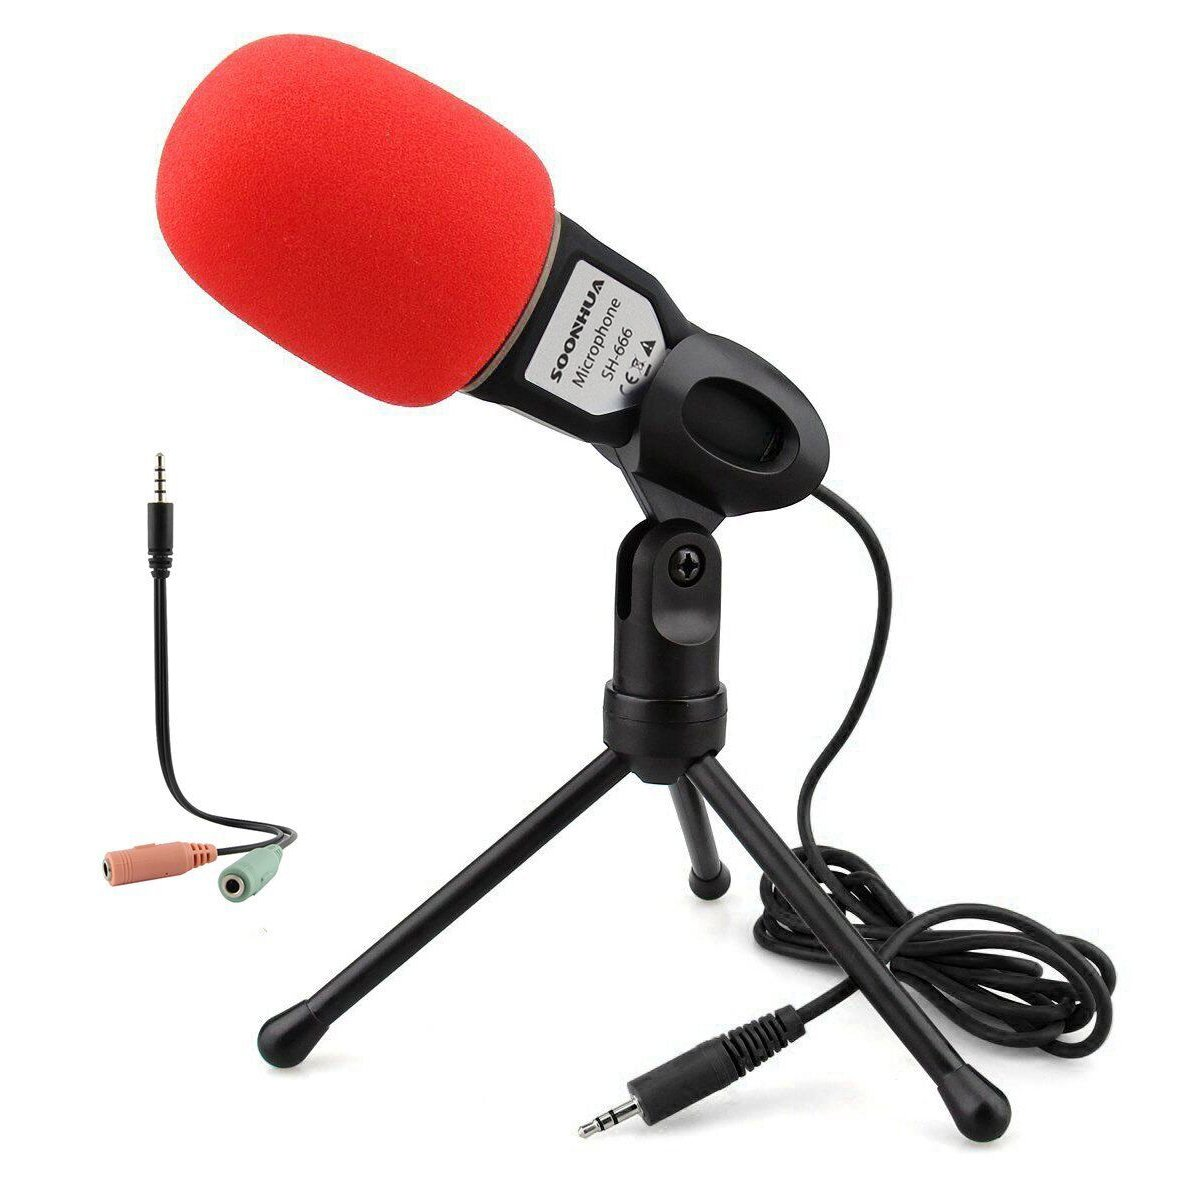 Condenser Microphone,Computer Microphone,SOONHUA 3.5MM Plug and Play Omnidirectional Mic with Desktop Stand for Gaming,YouTube Video,Recording Podcast,Studio,for PC,Laptop,Tablet,Phone by SOONHUA